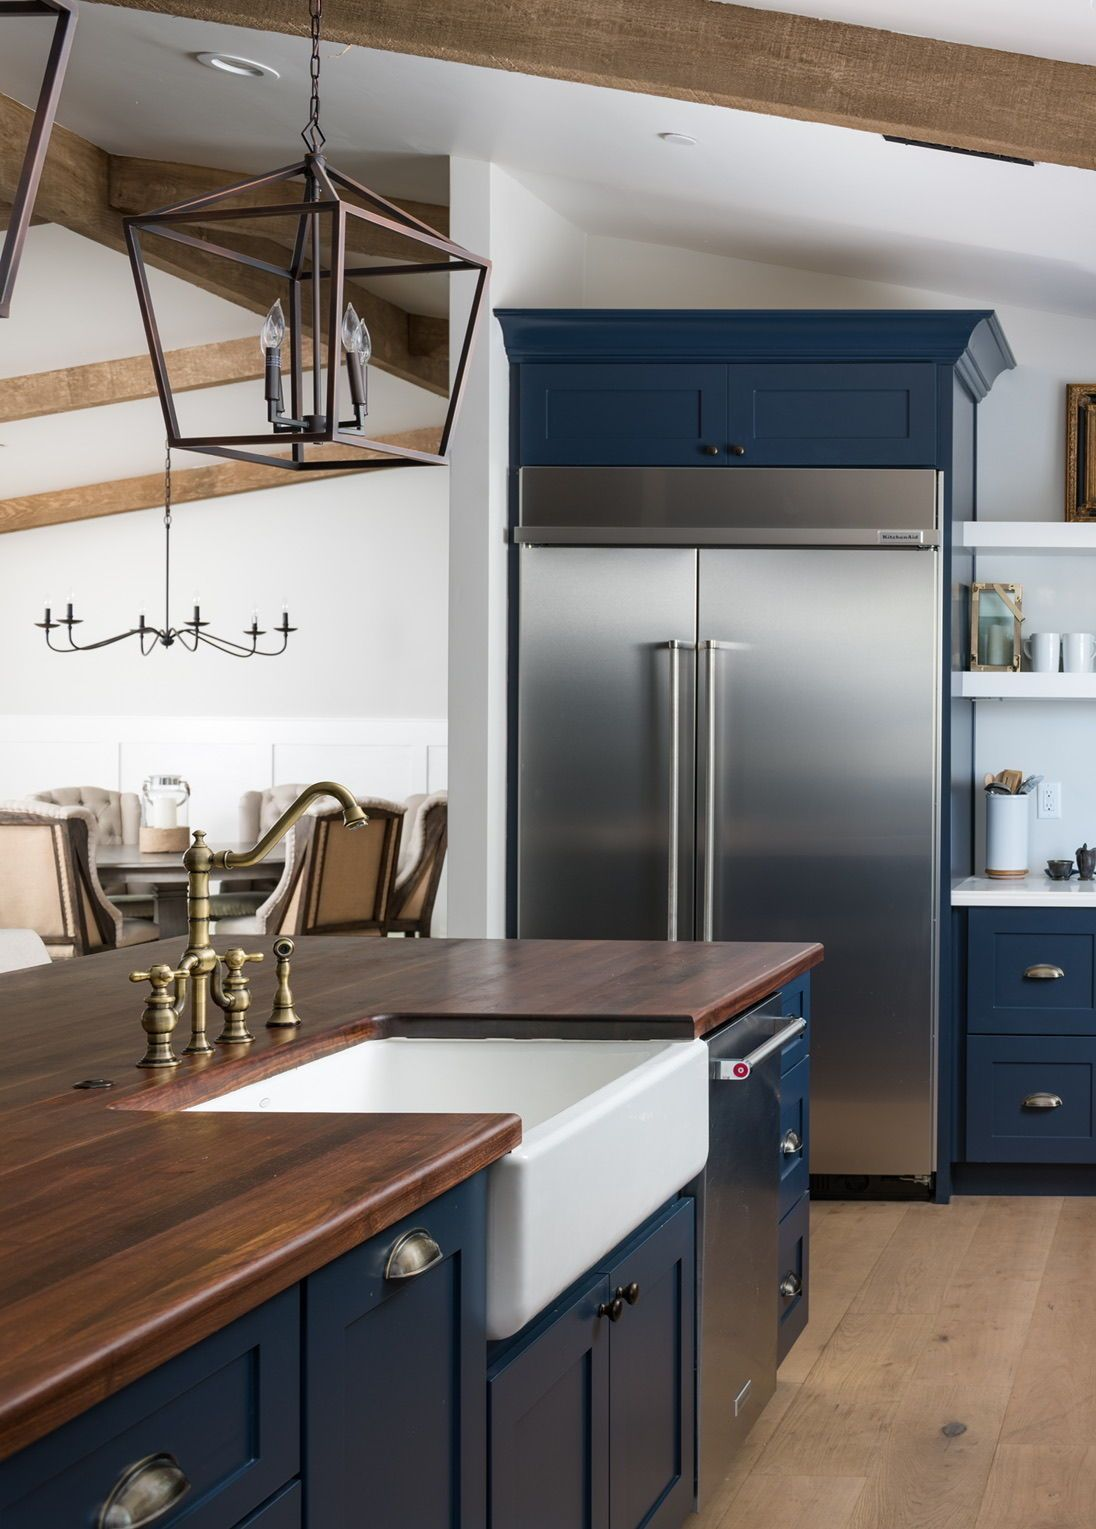 Luxury traditional kitchen design open concept. Navy